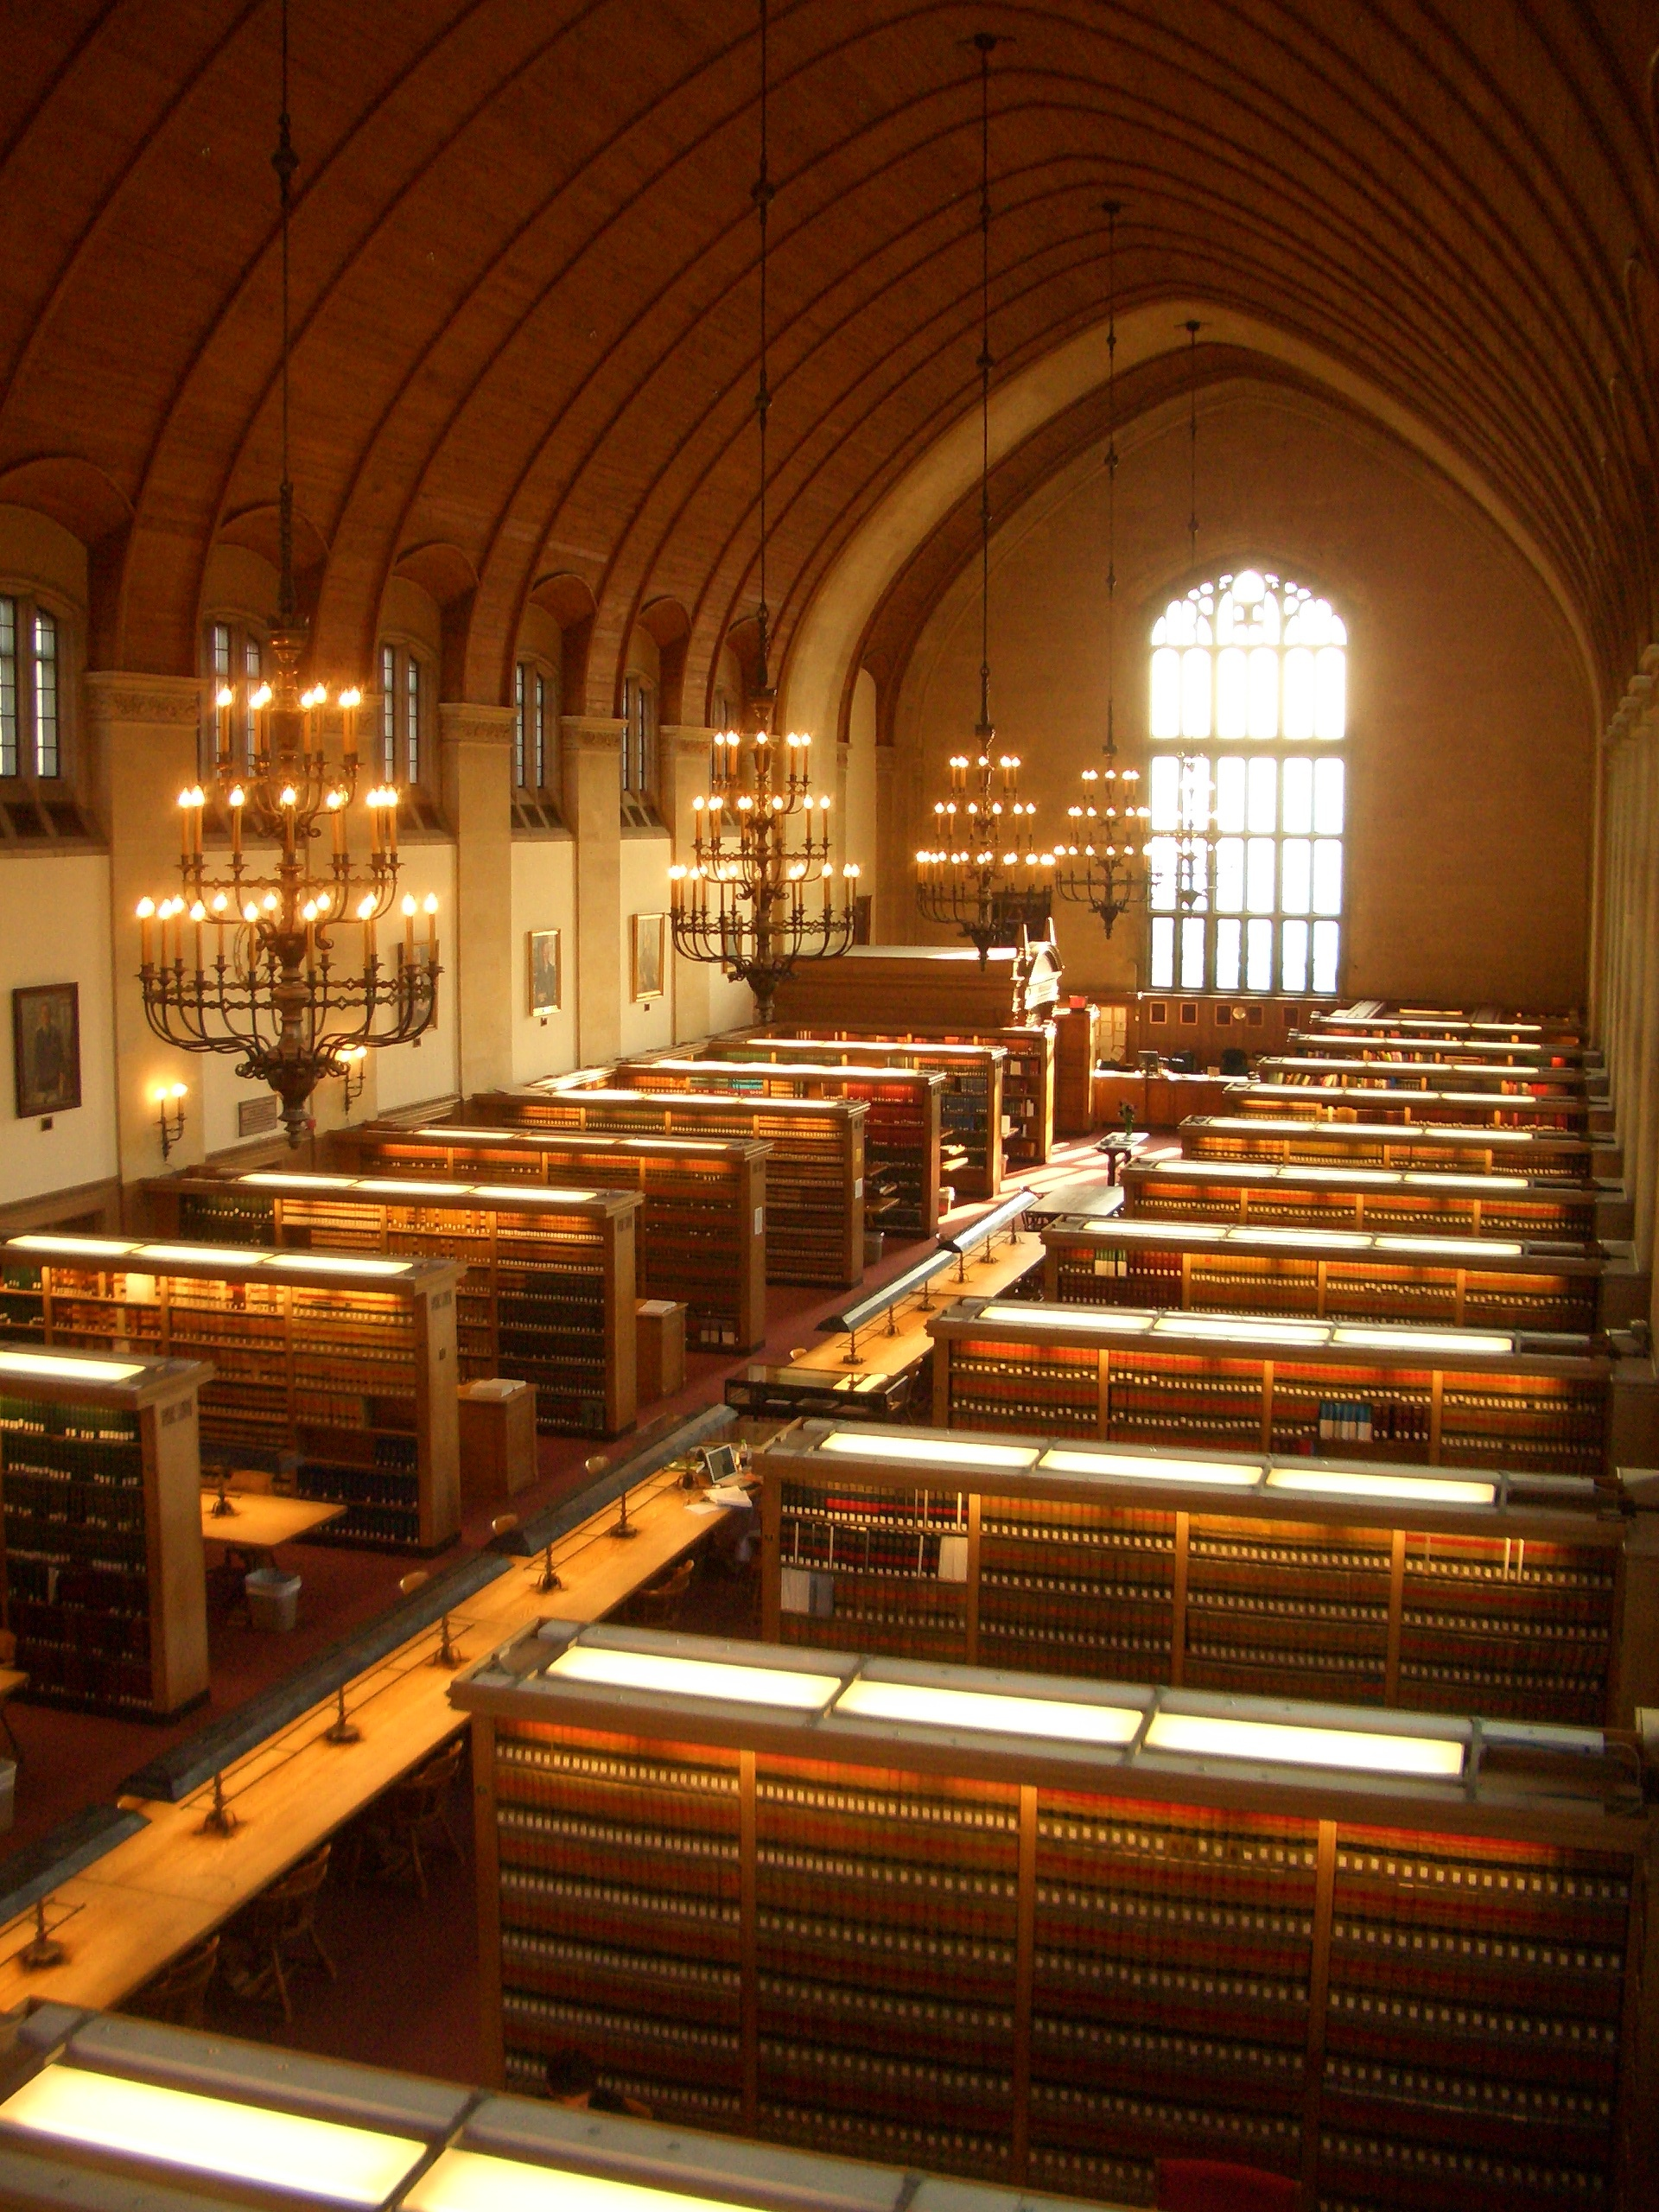 cornell-law-school-library-reading-room.JPG